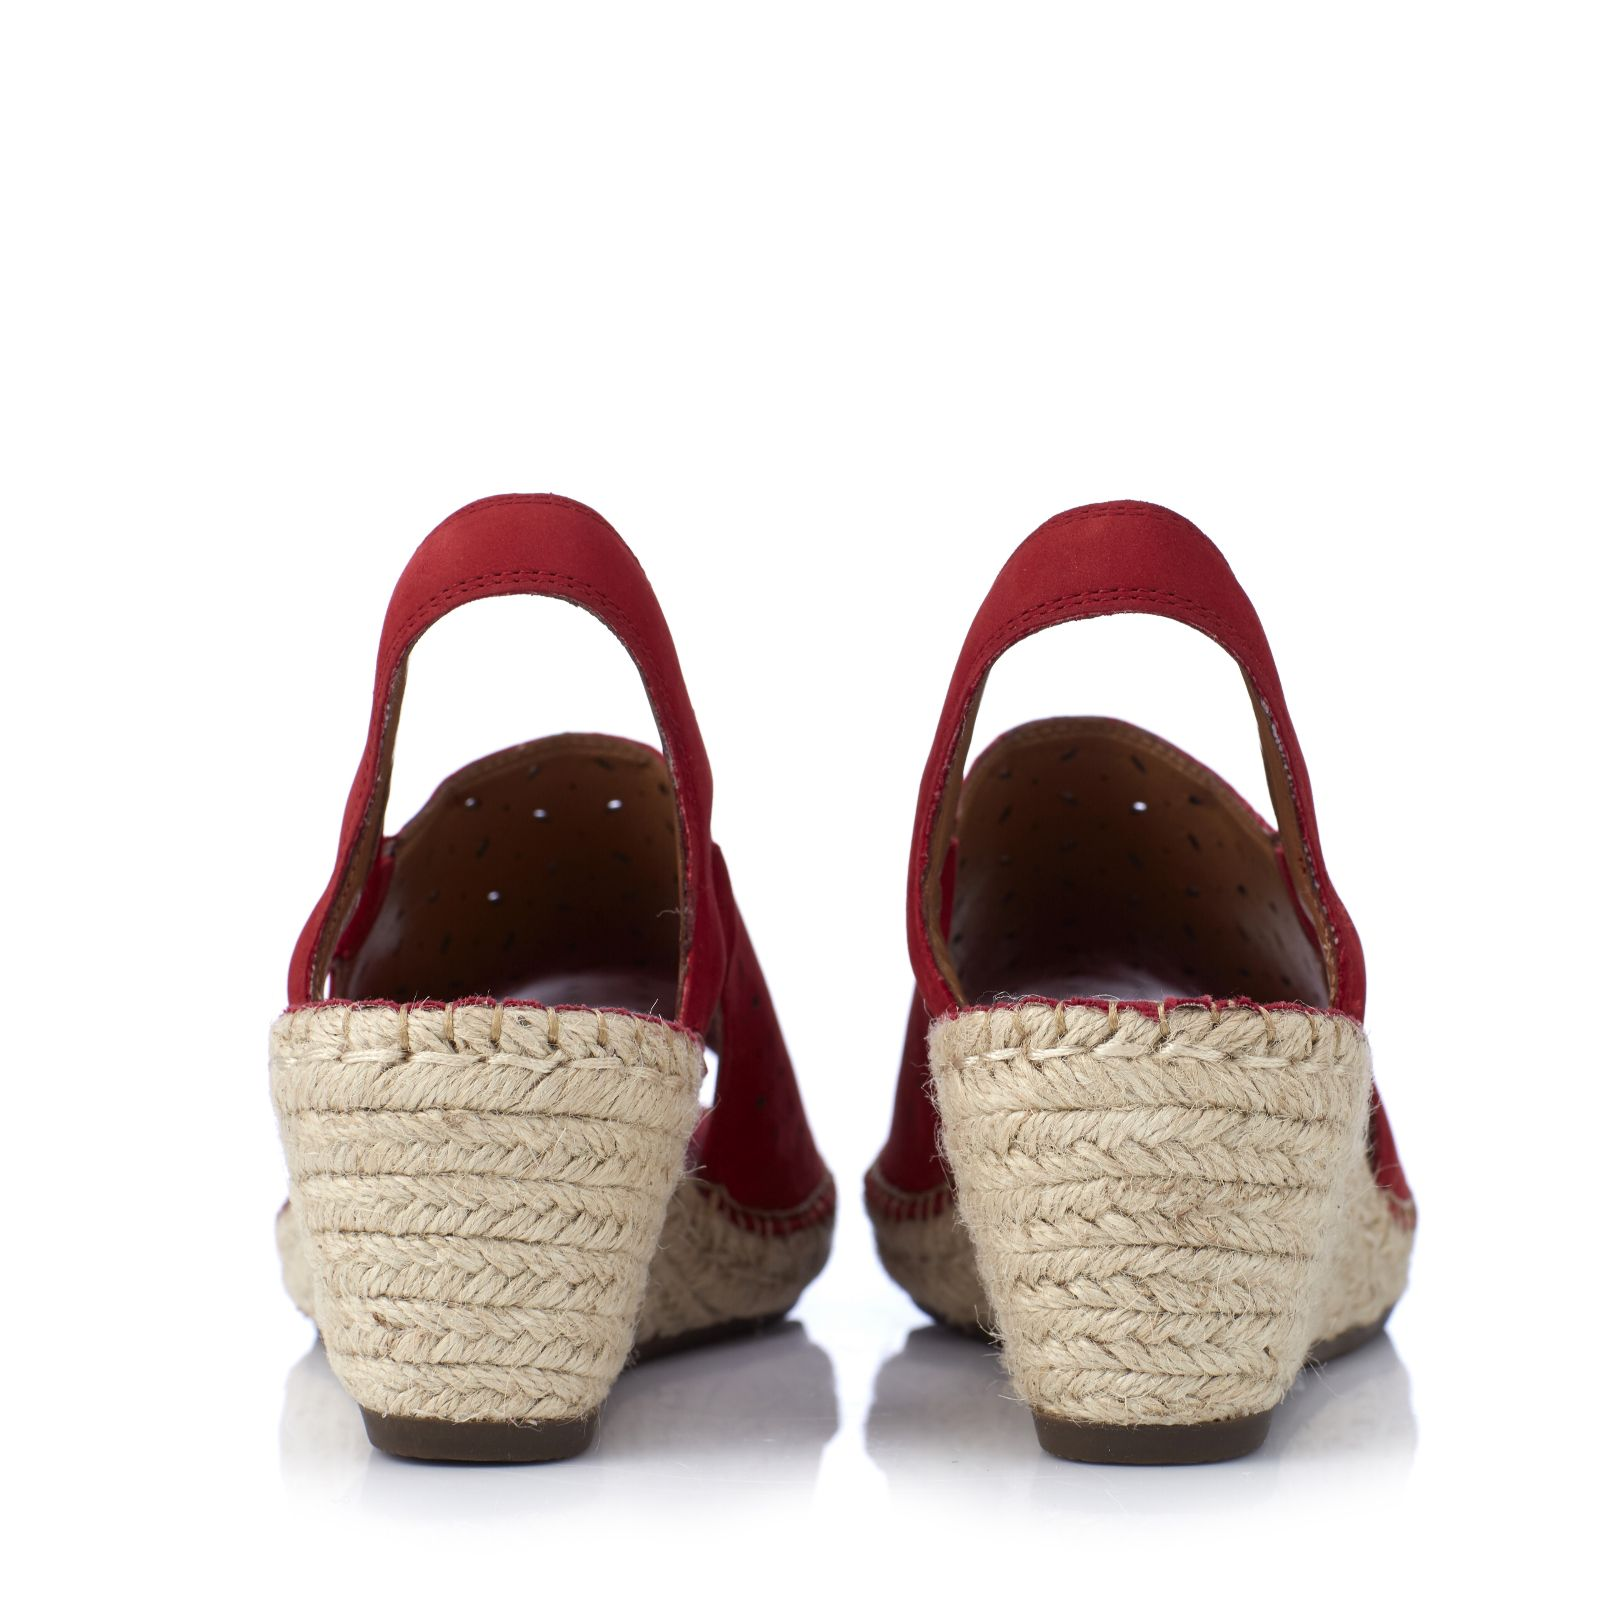 937db5bc9a4 Clarks Artisan Petrina Gail Leather Espadrille Wedge Sandal Standard Fit -  QVC UK